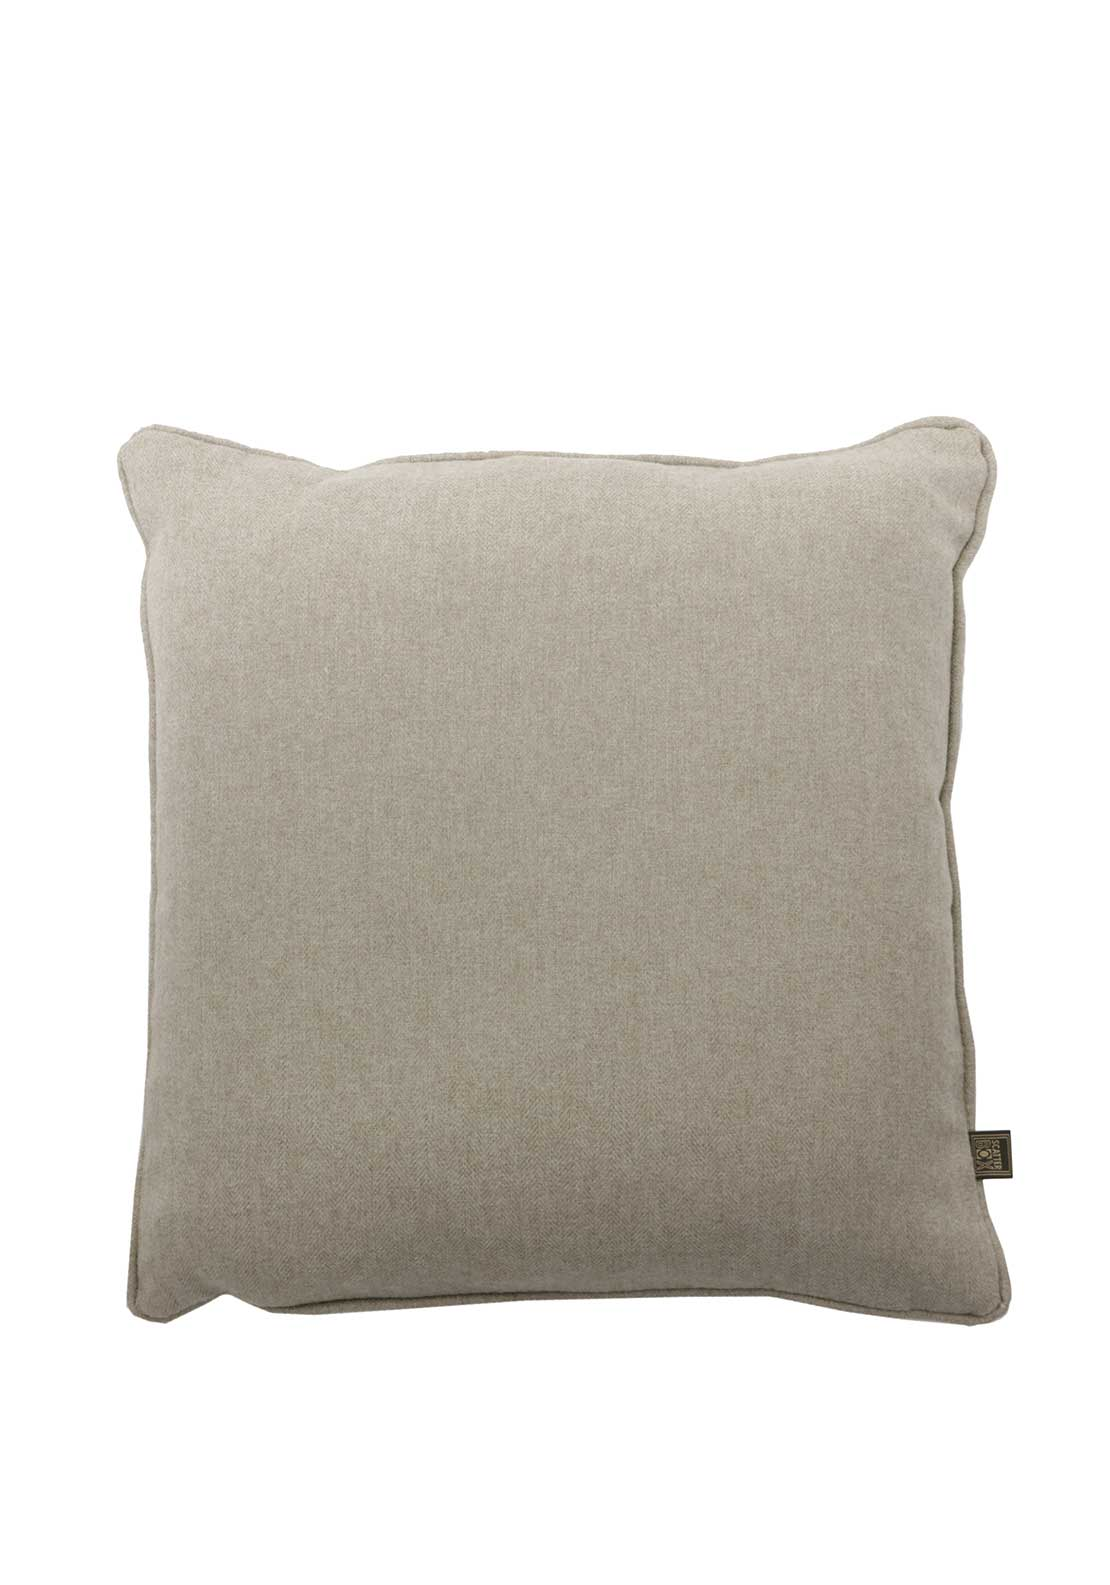 Scatterbox Tweed Cushion Natural 43 x 43cm